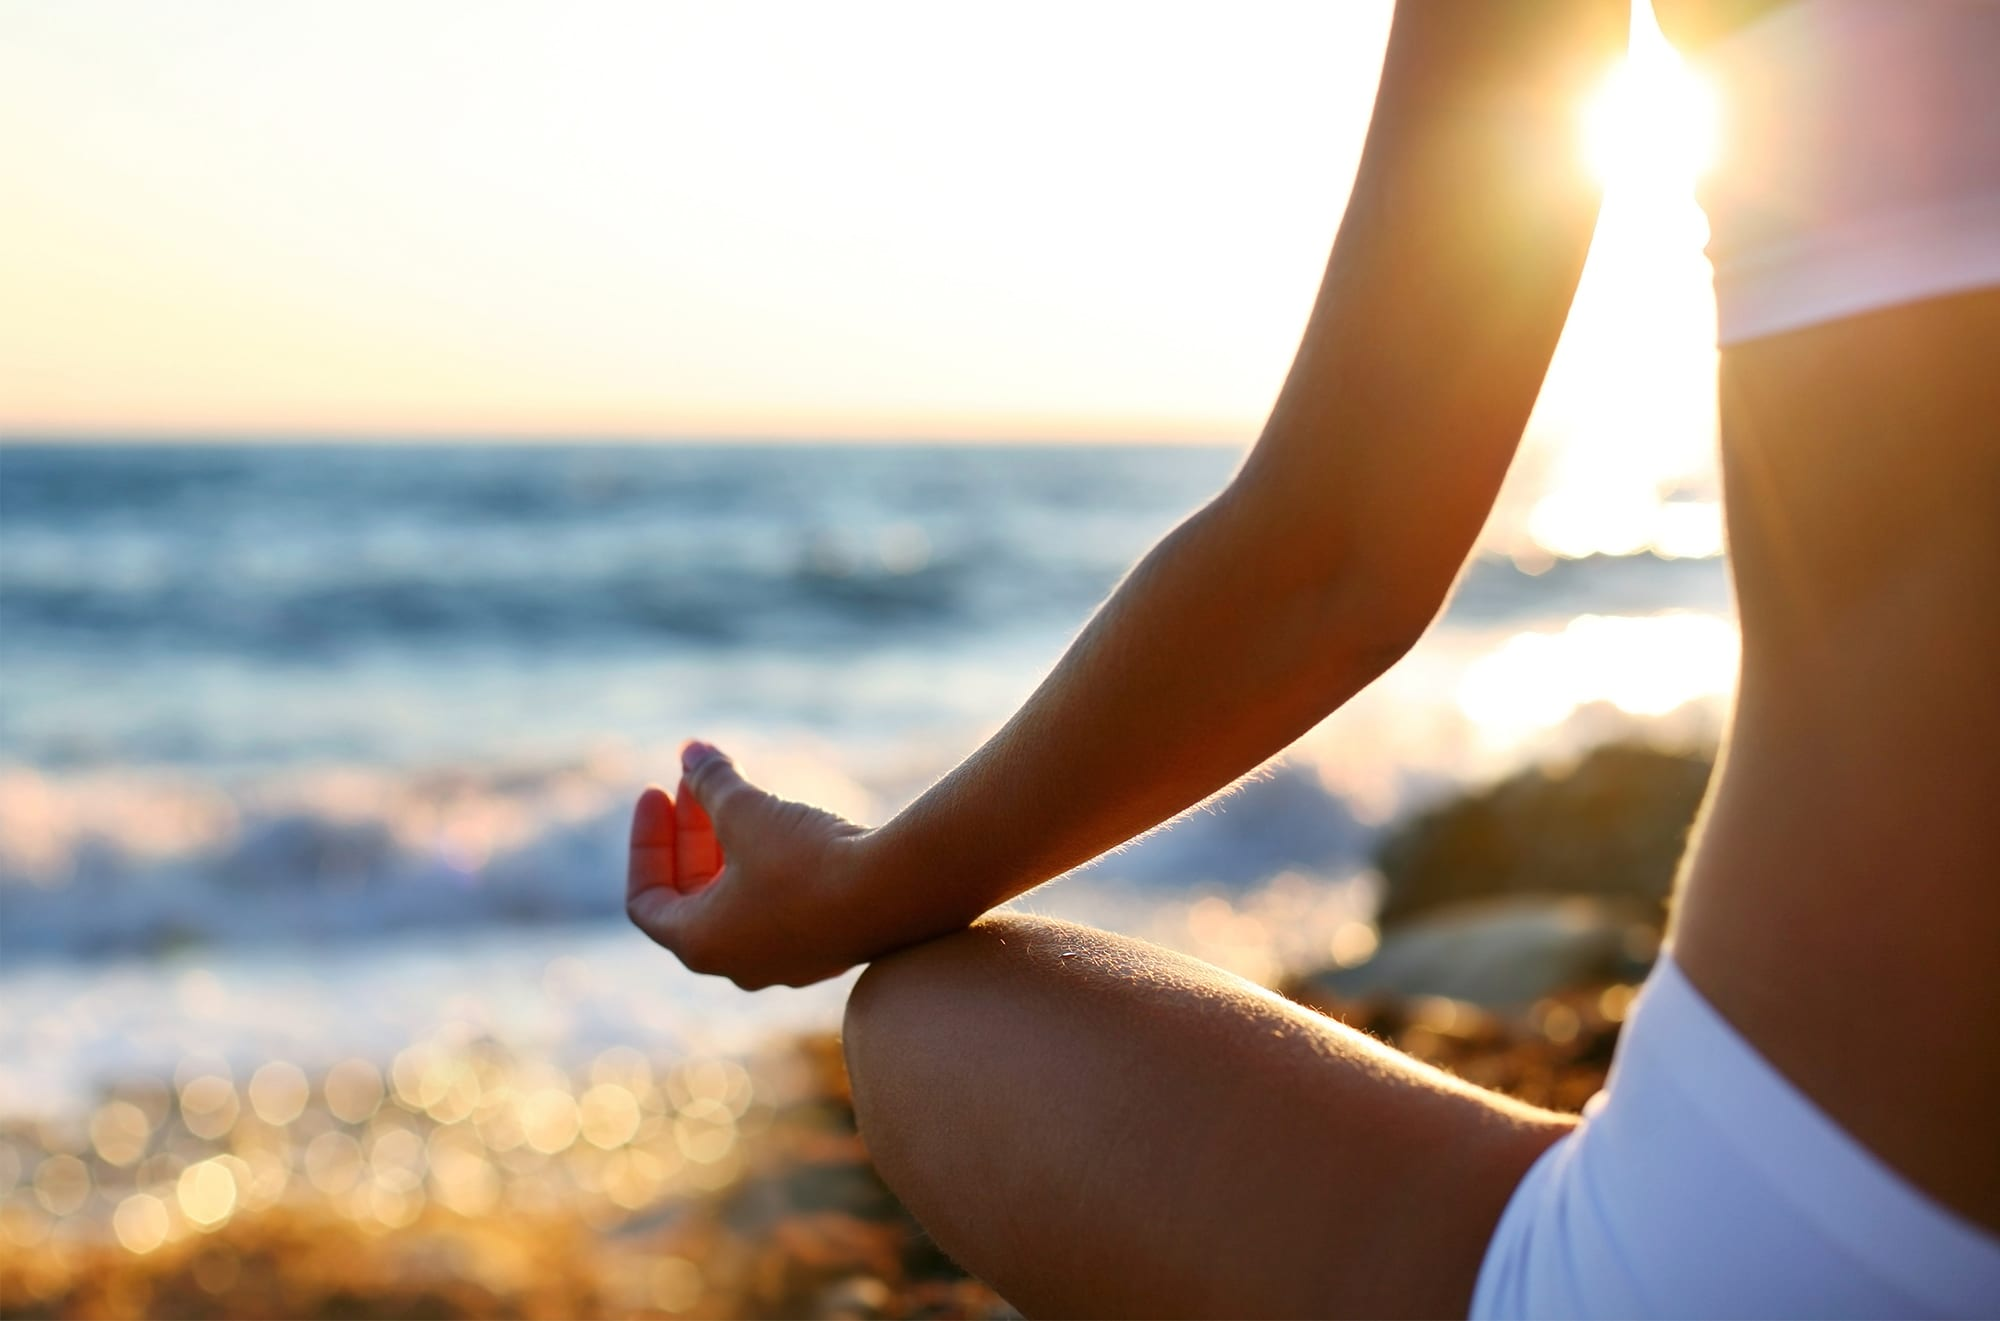 How To Meditate: Clear Your Mind With Mantras